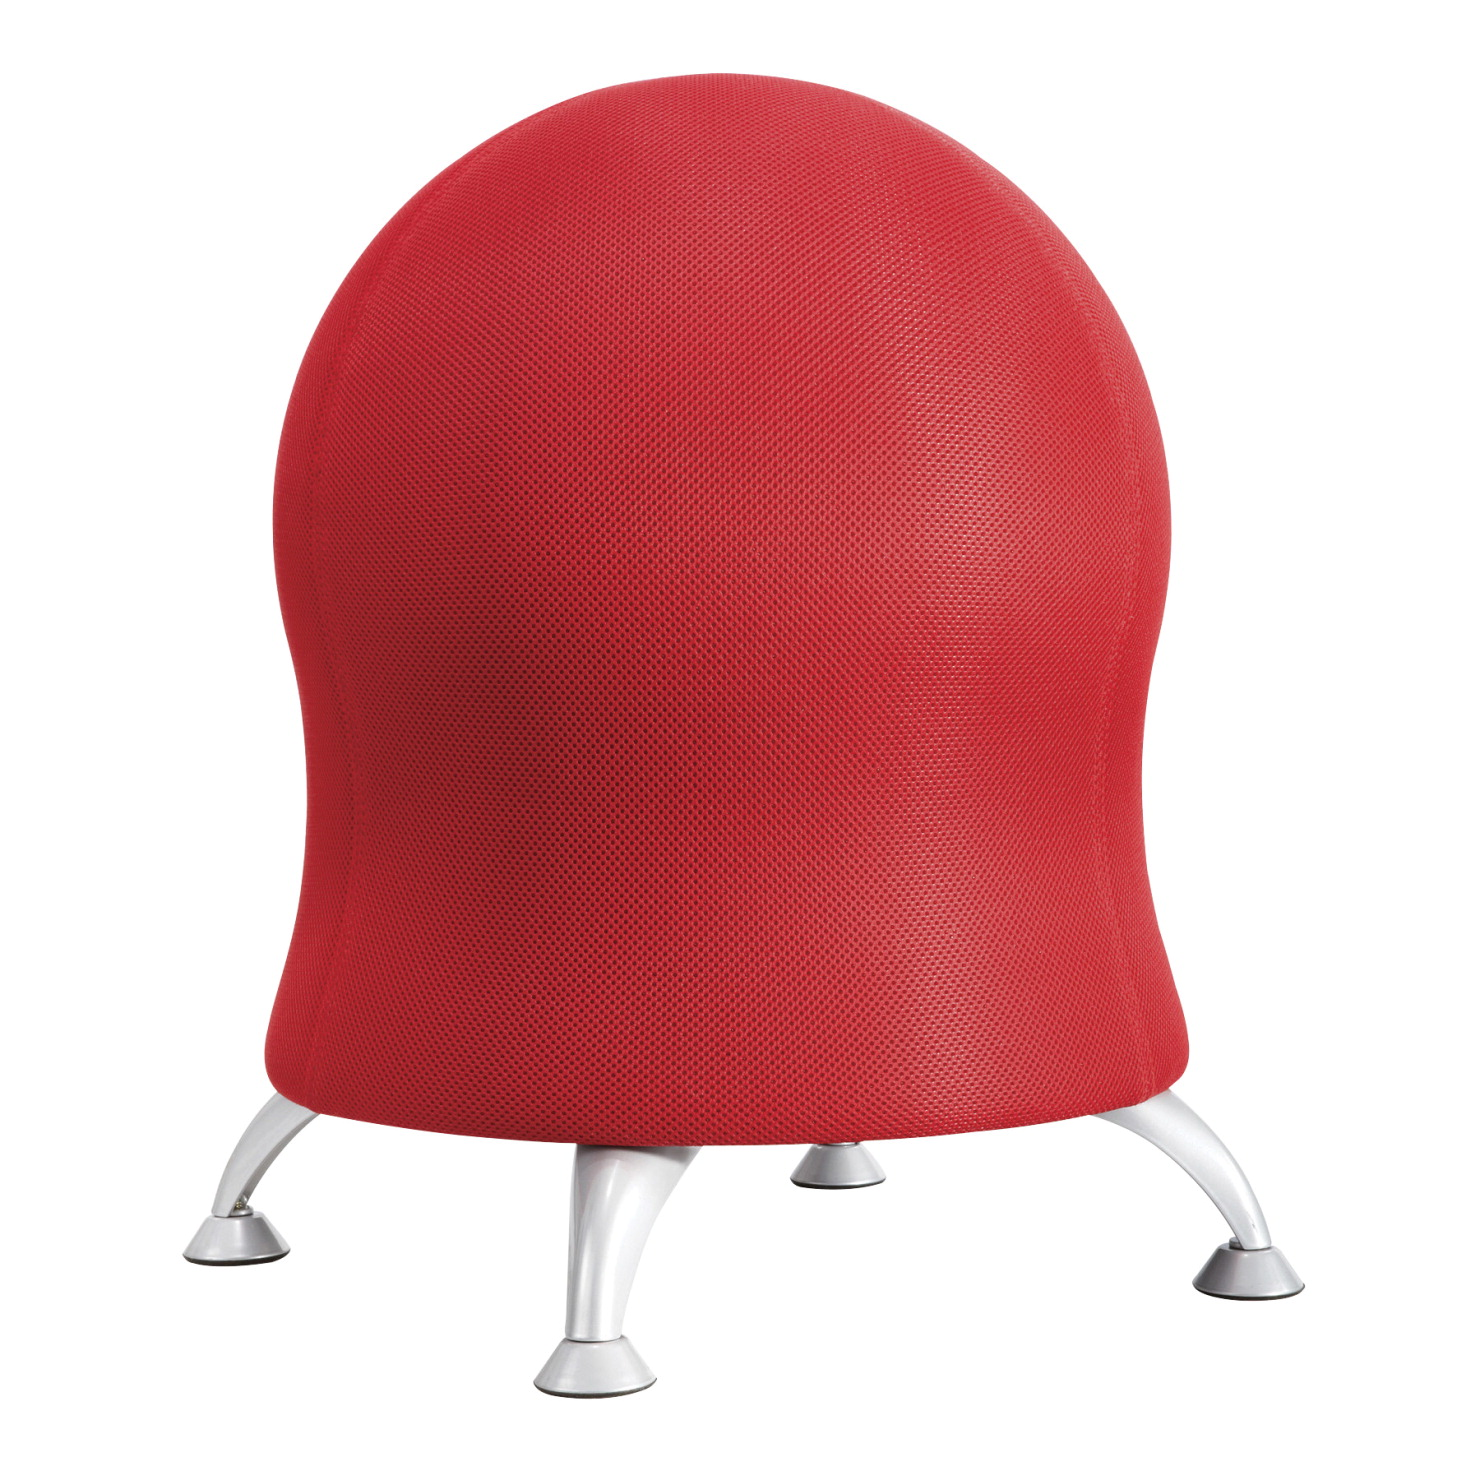 online eero malaysia products ball chairs designer tabula chair furniture style aarnio rasa in